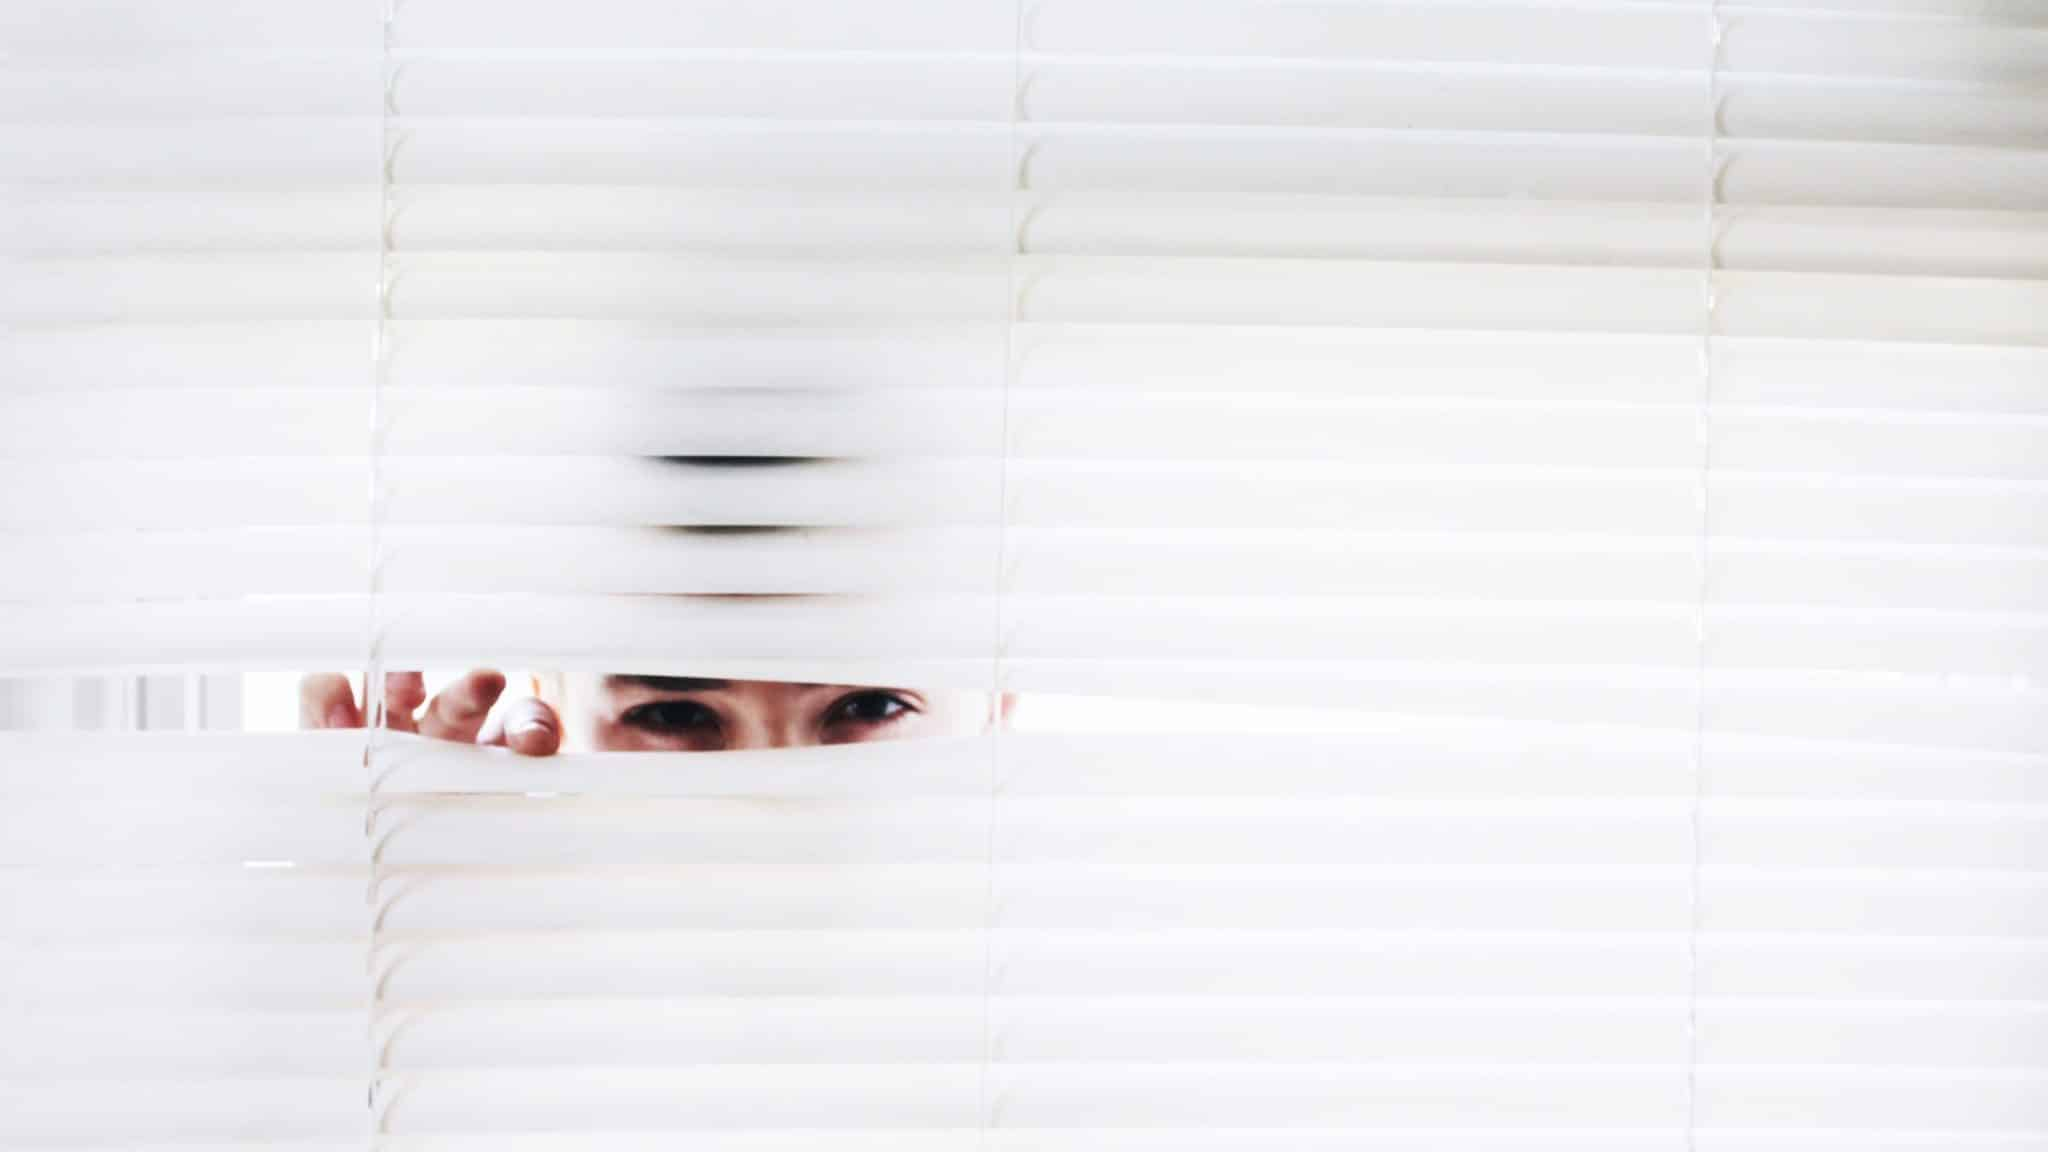 person looking through blinds